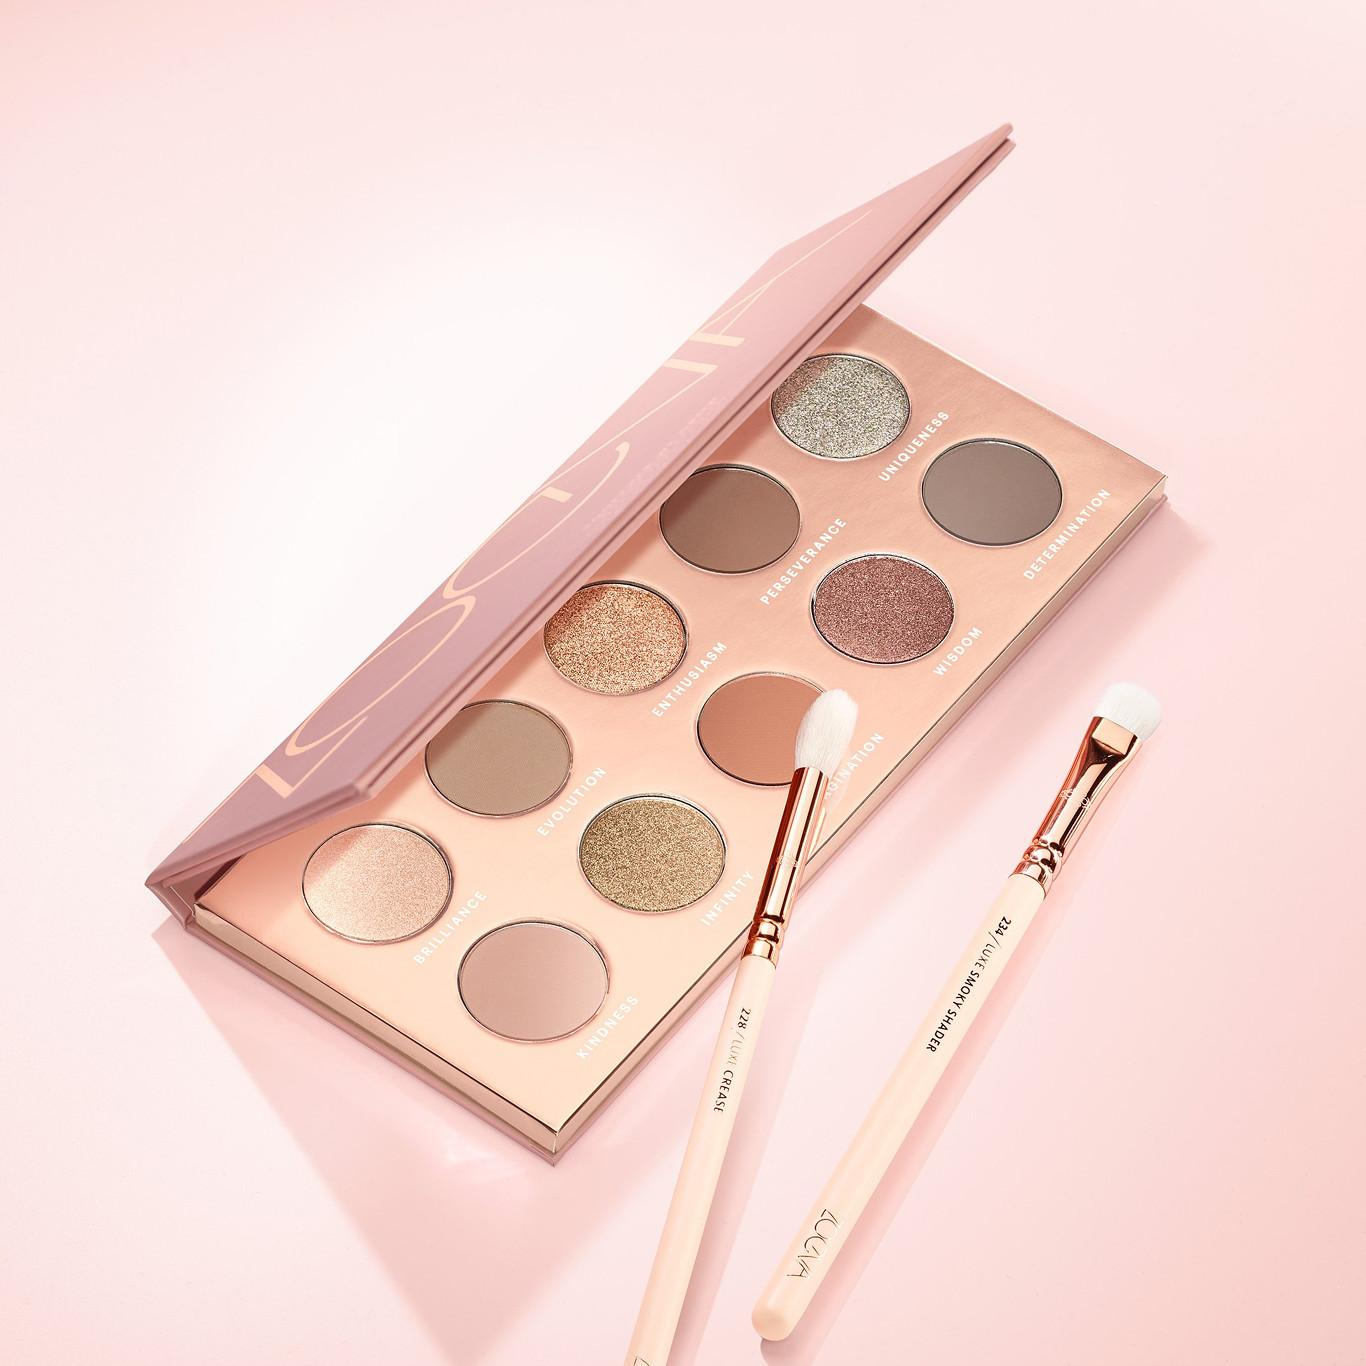 ZOEVA Cosmetics Together We Grow Eyeshadow Palette Open With Brushes